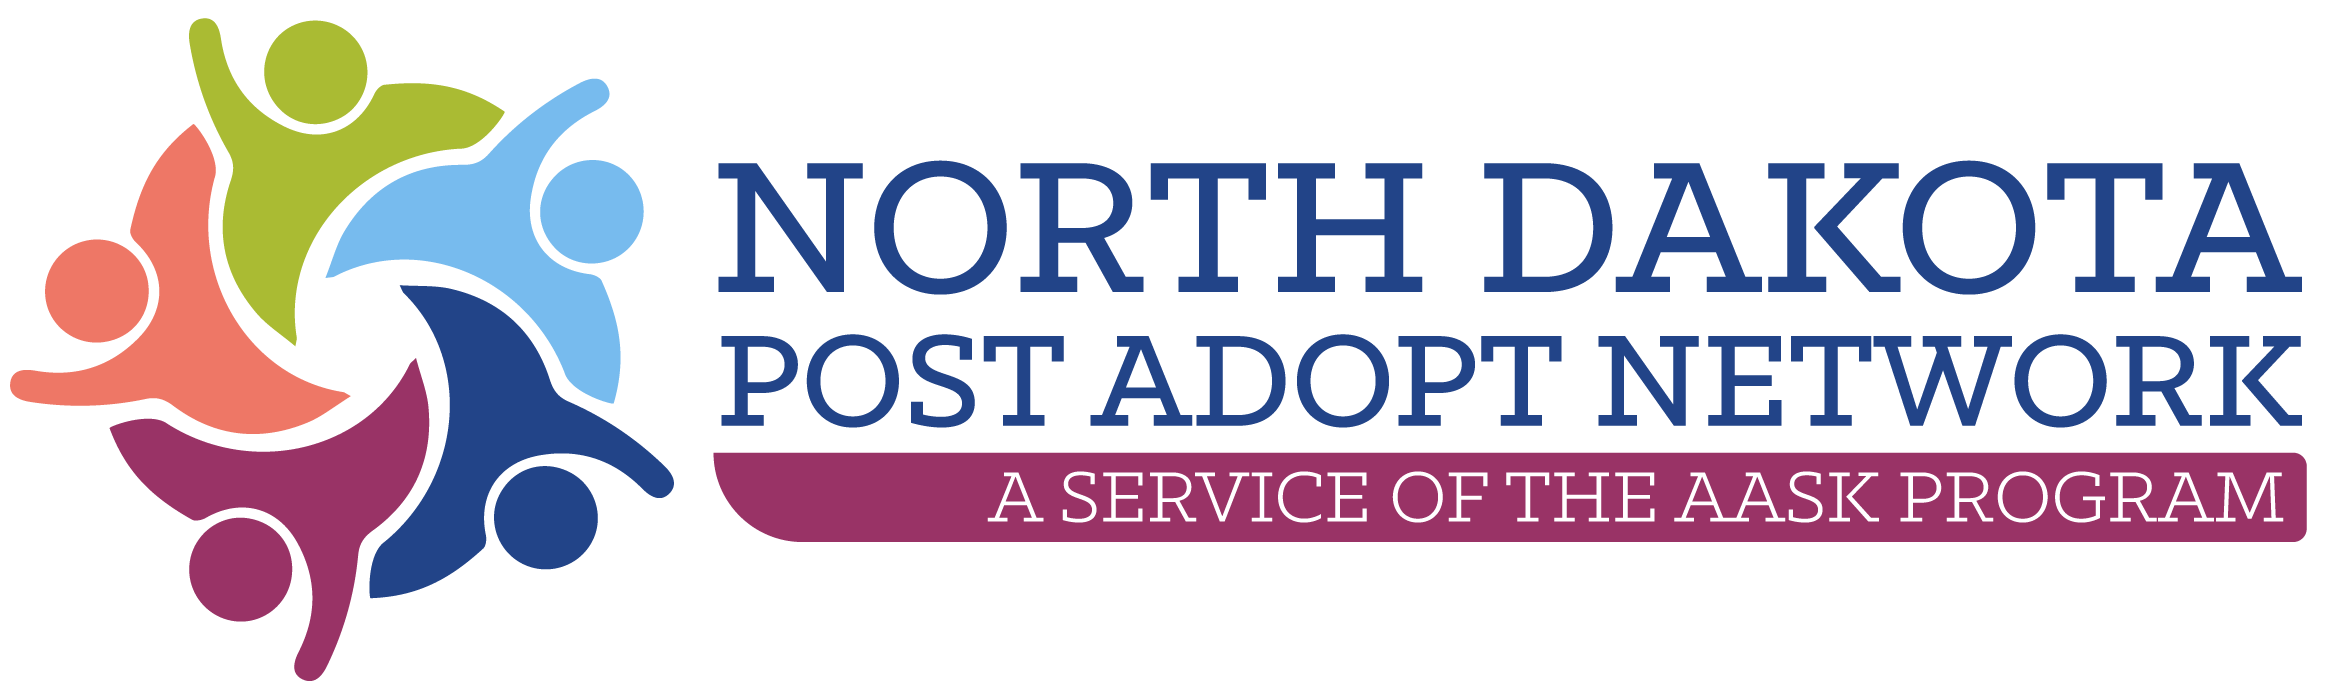 North Dakota Post Adopt Network